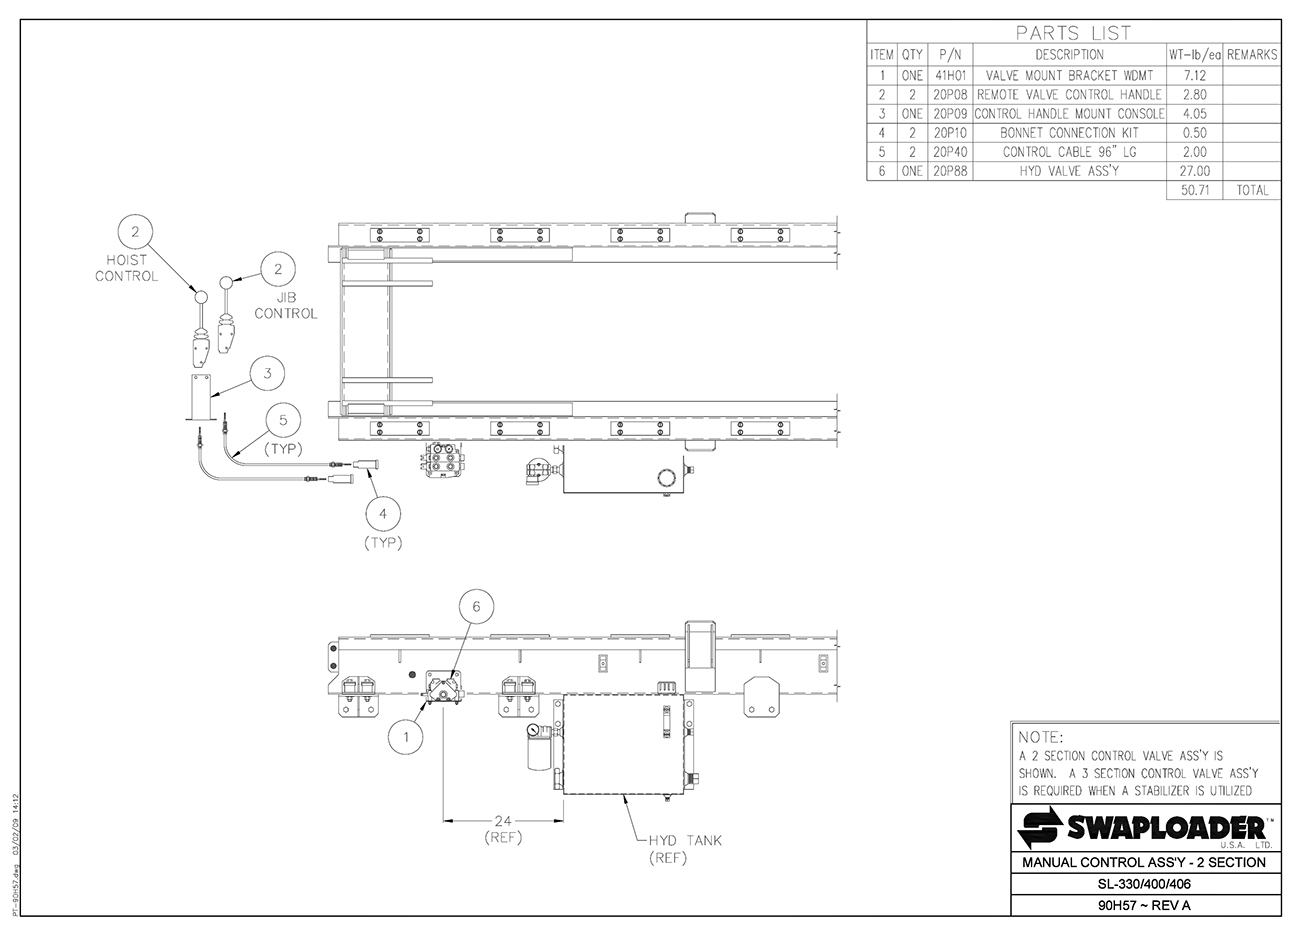 SL-330/400/406 Manual Control Assembly (2 Section) Diagram